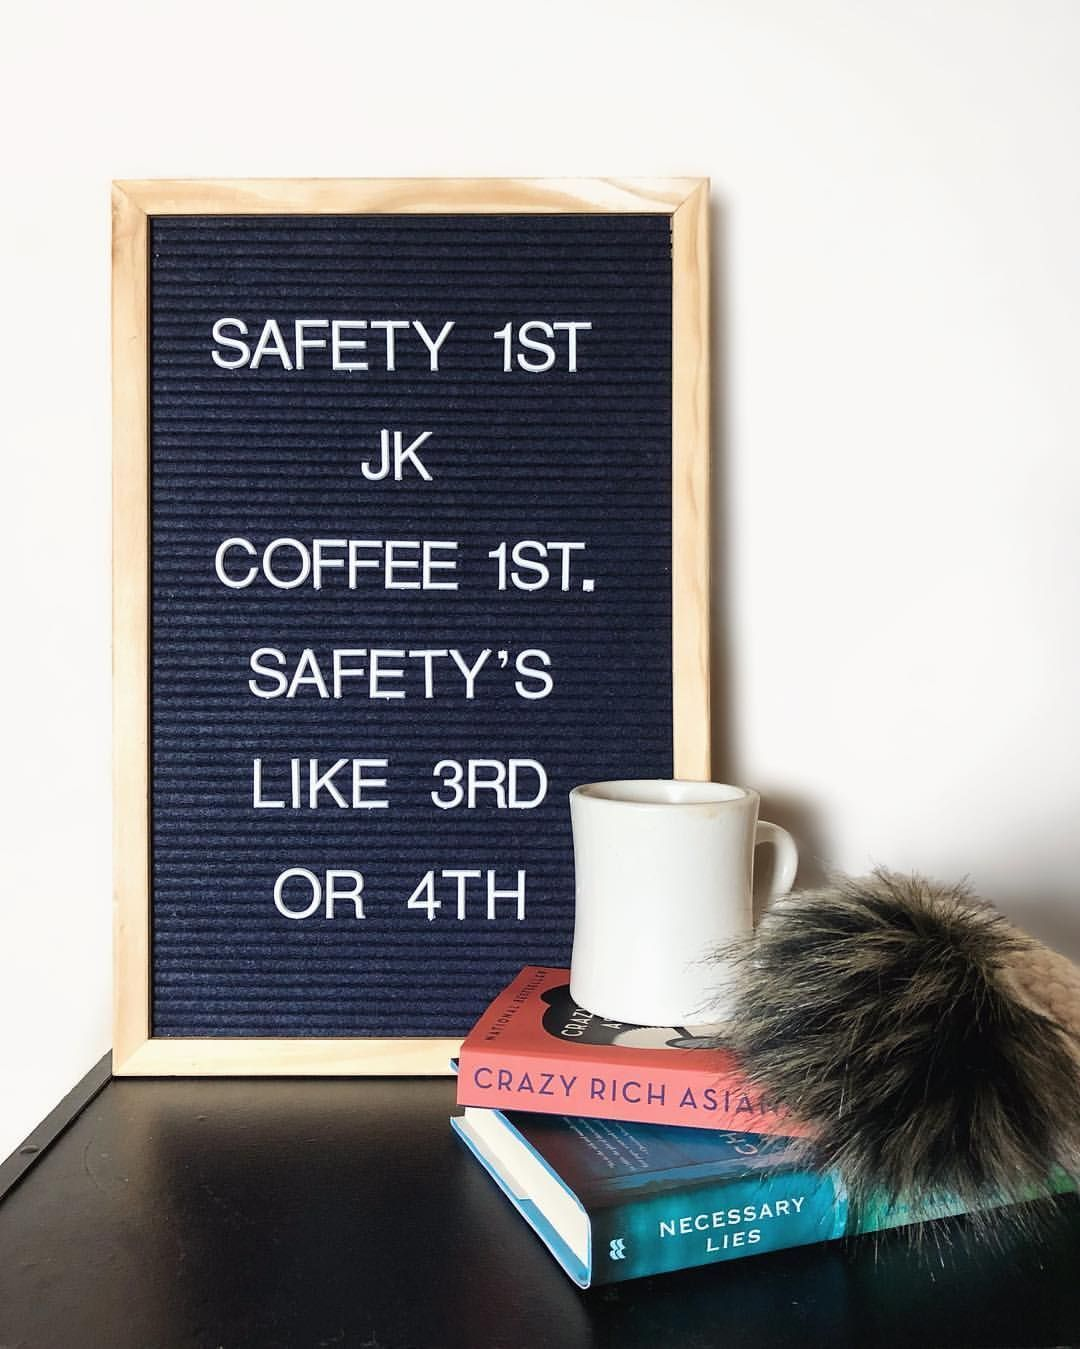 Coffee Letterboard Quotes And Chunky Knit Hat Coffee Letterboard Quotes And Chunky Knit Hats Coffee Quotes Funny Message Board Quotes Letter Board